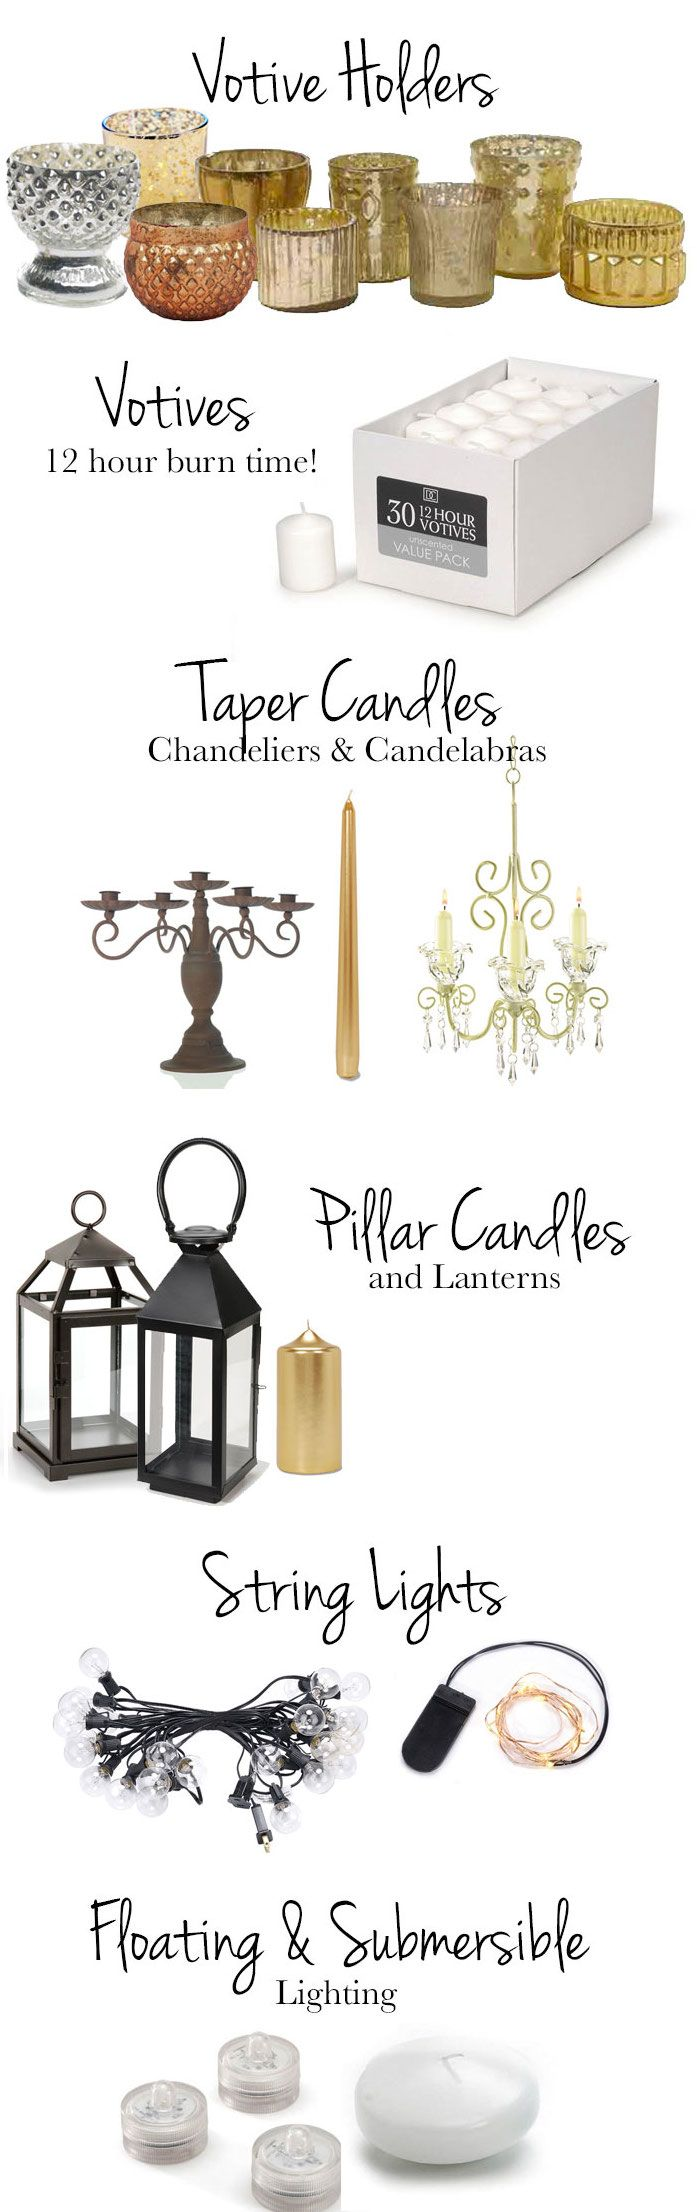 Decorate your wedding in romatic lighting like gold votives and chic candelabras, from Afloral.com